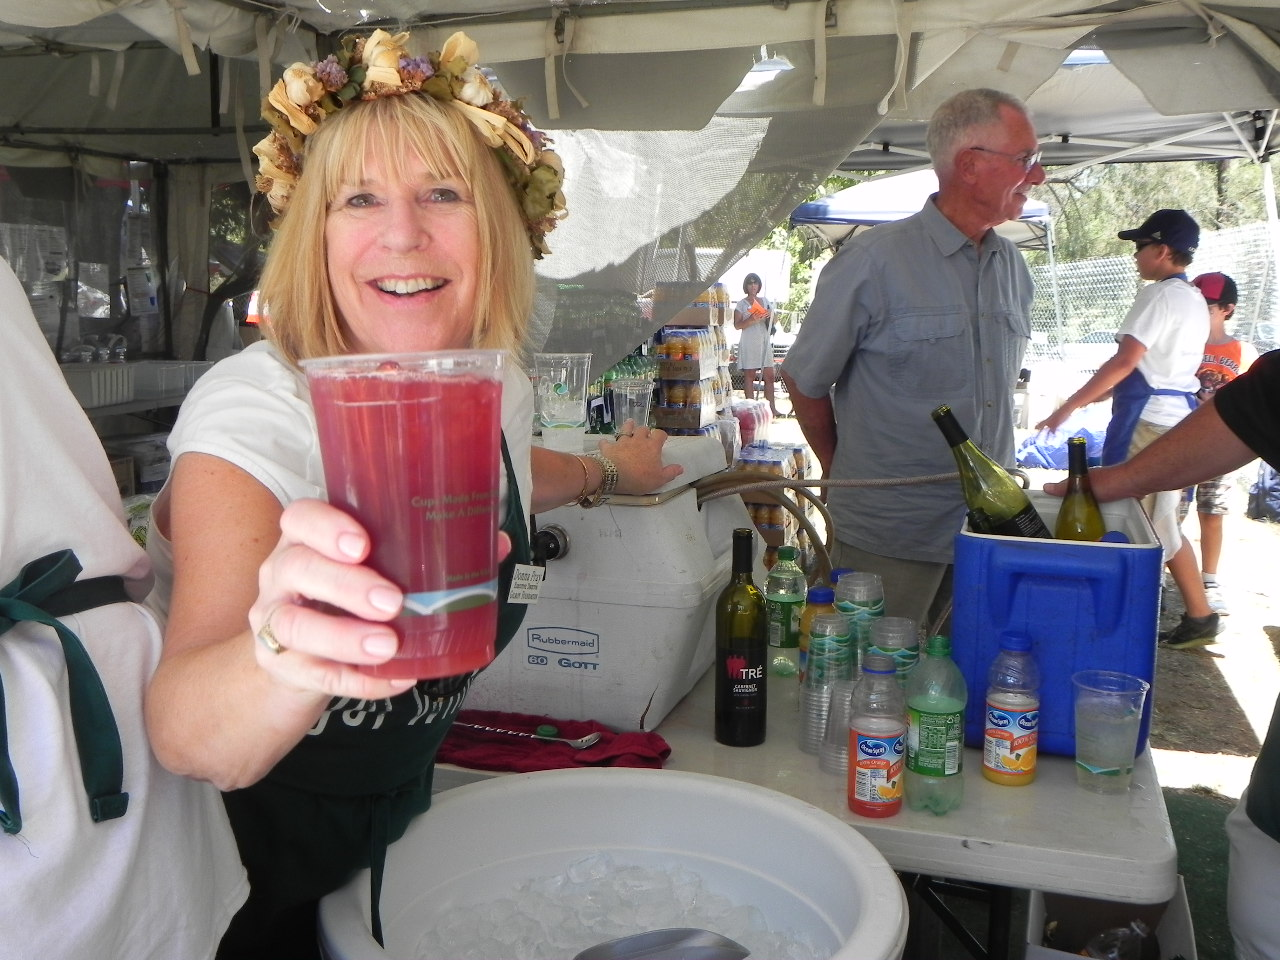 Homemade sangria was a popular item at the festival. It was second only to beer. Photo: Gina Scialabba